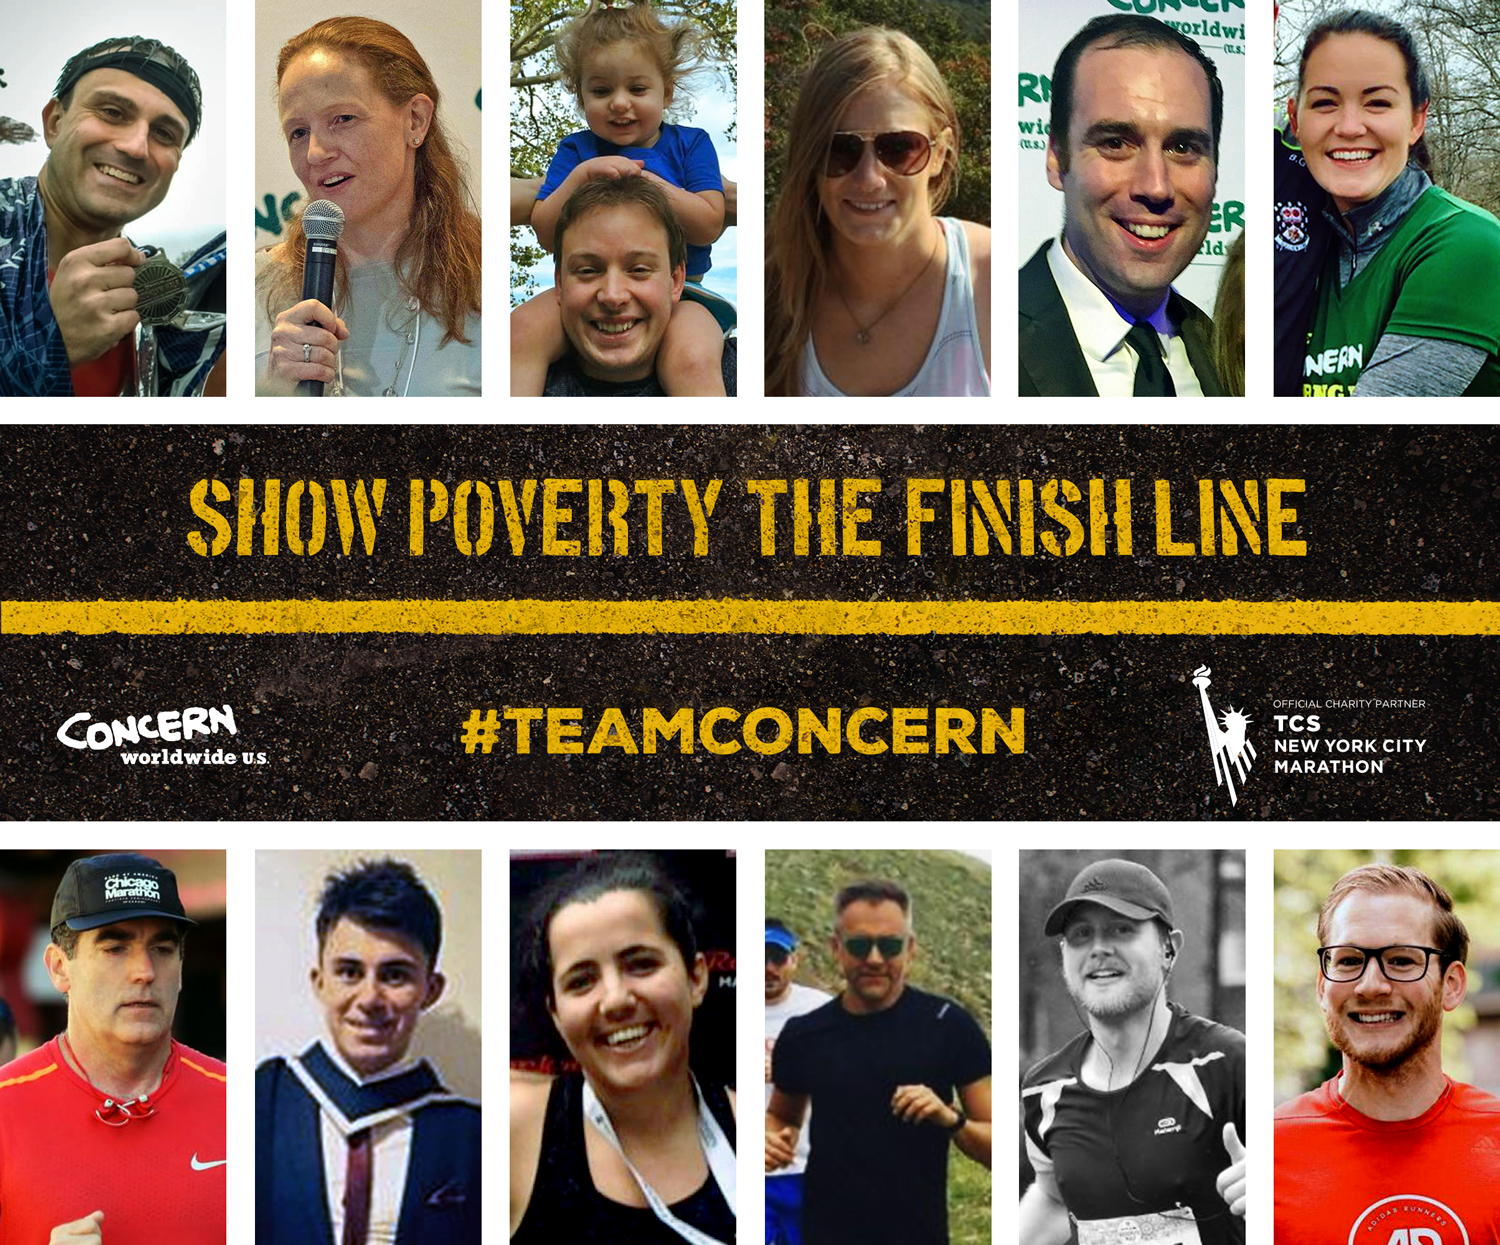 The 12 members of Concern's 2018 NYC Marathon team .